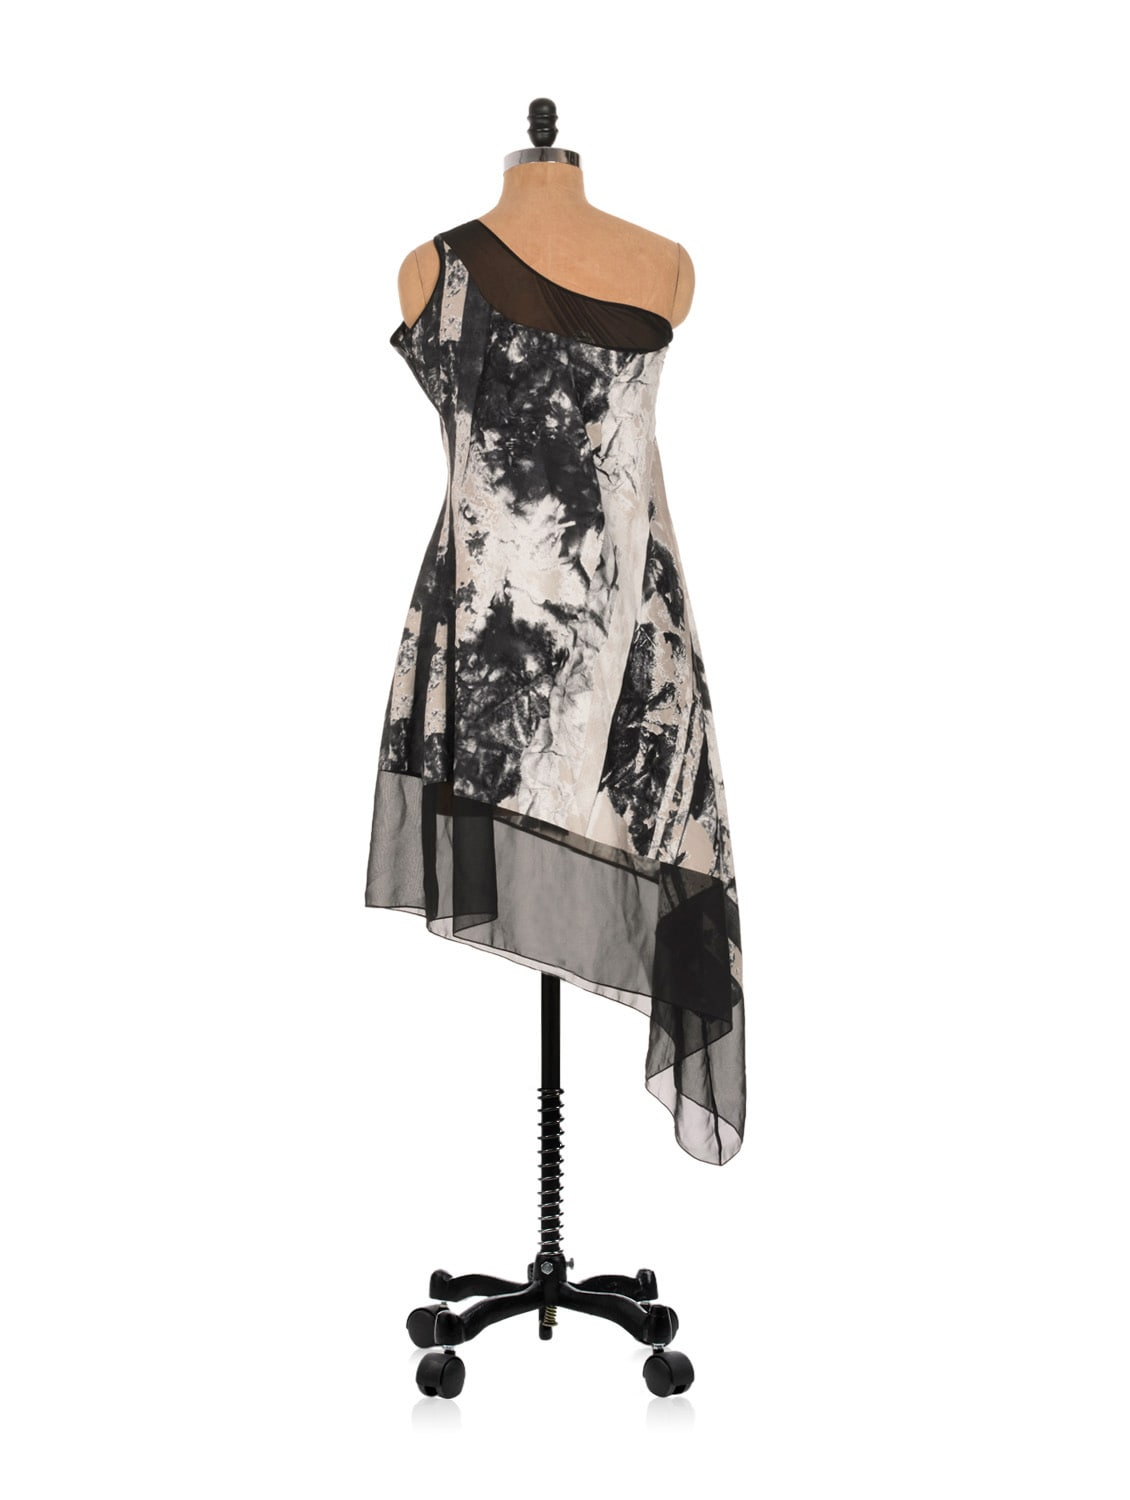 One Shouldered Printed Asymmetrical Dress - Nangalia Ruchira